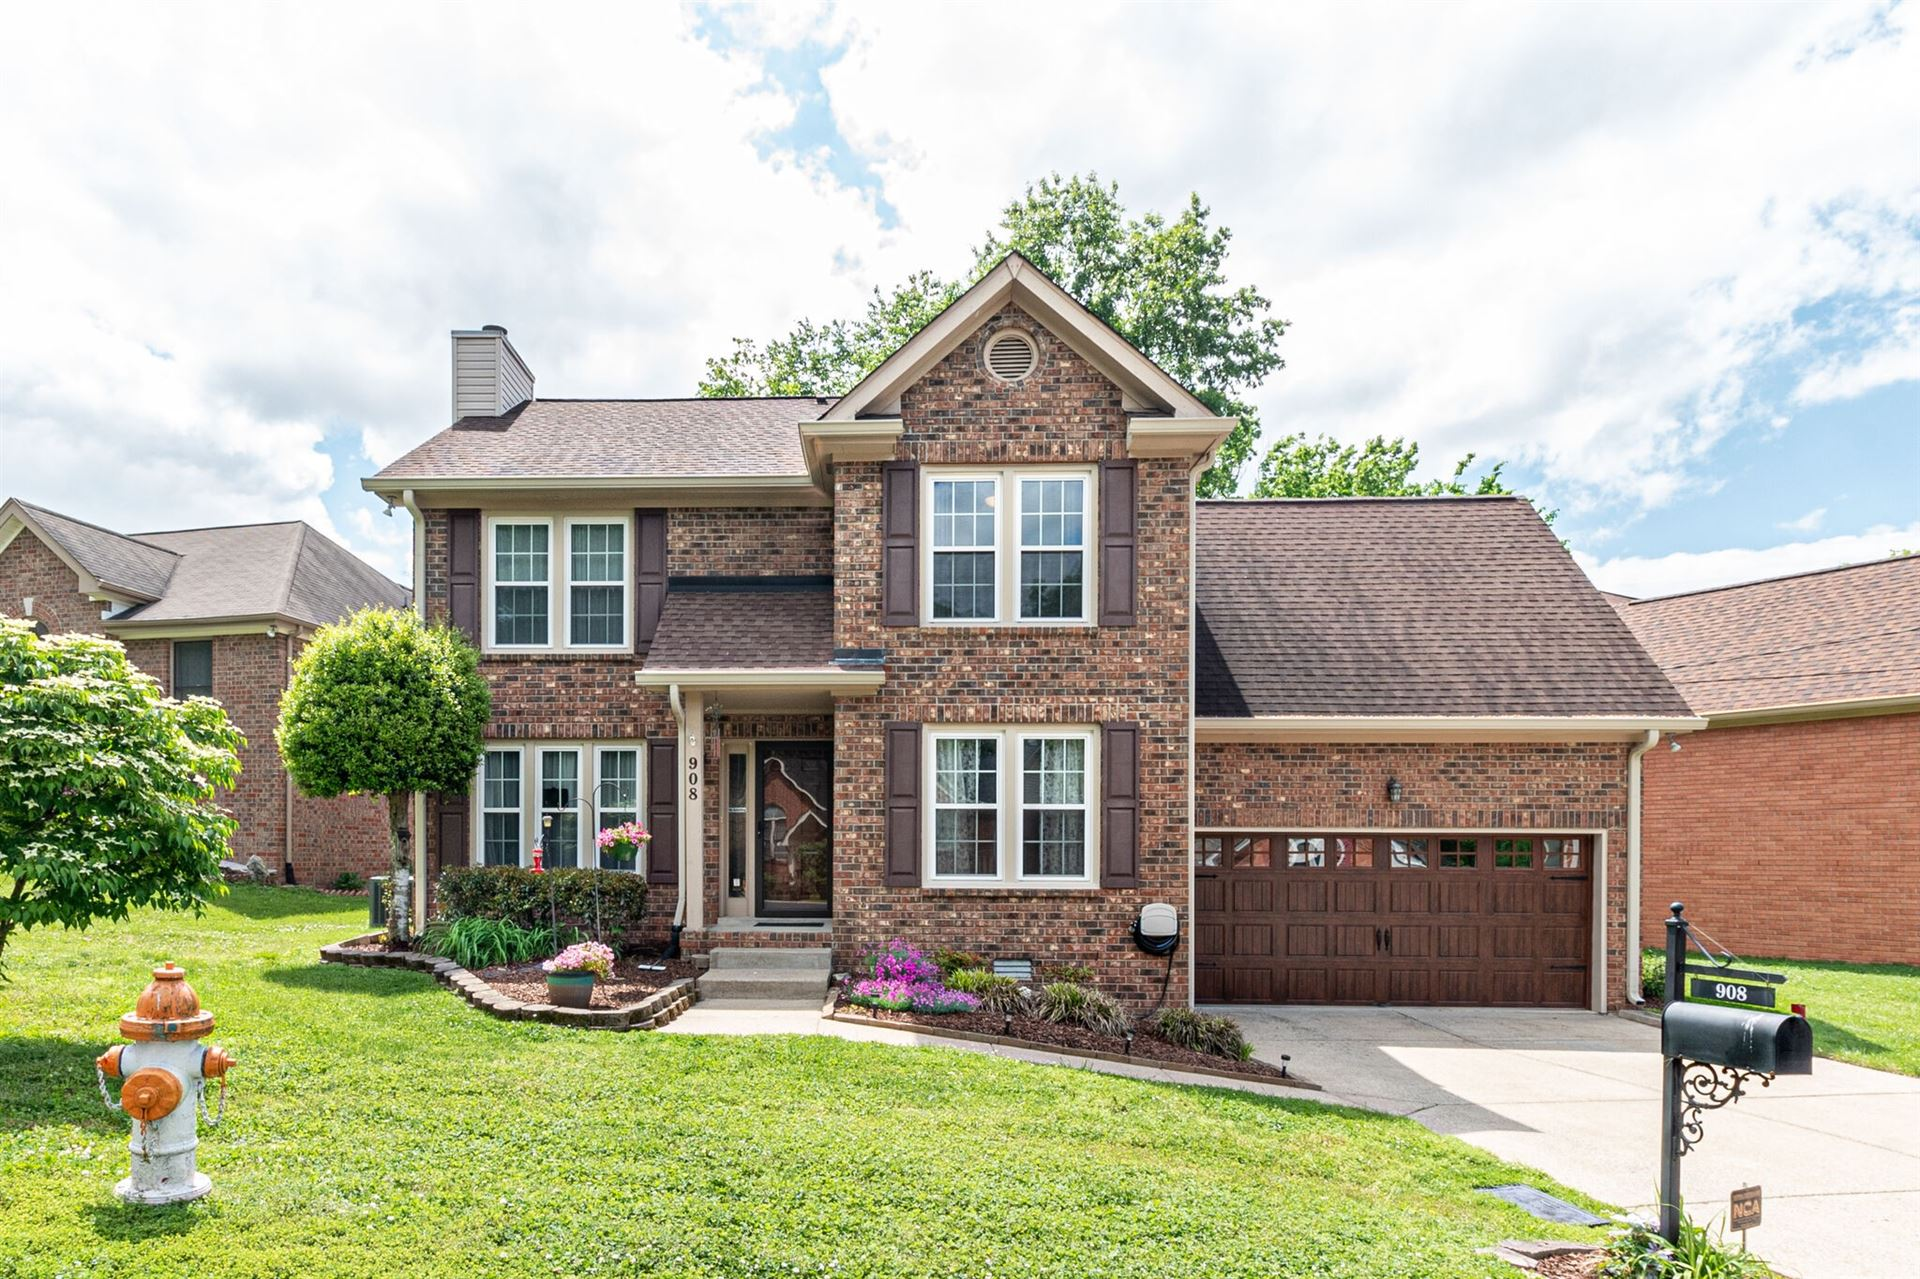 908 Carlisle Ct. S, Nashville, TN 37214 - MLS#: 2251014